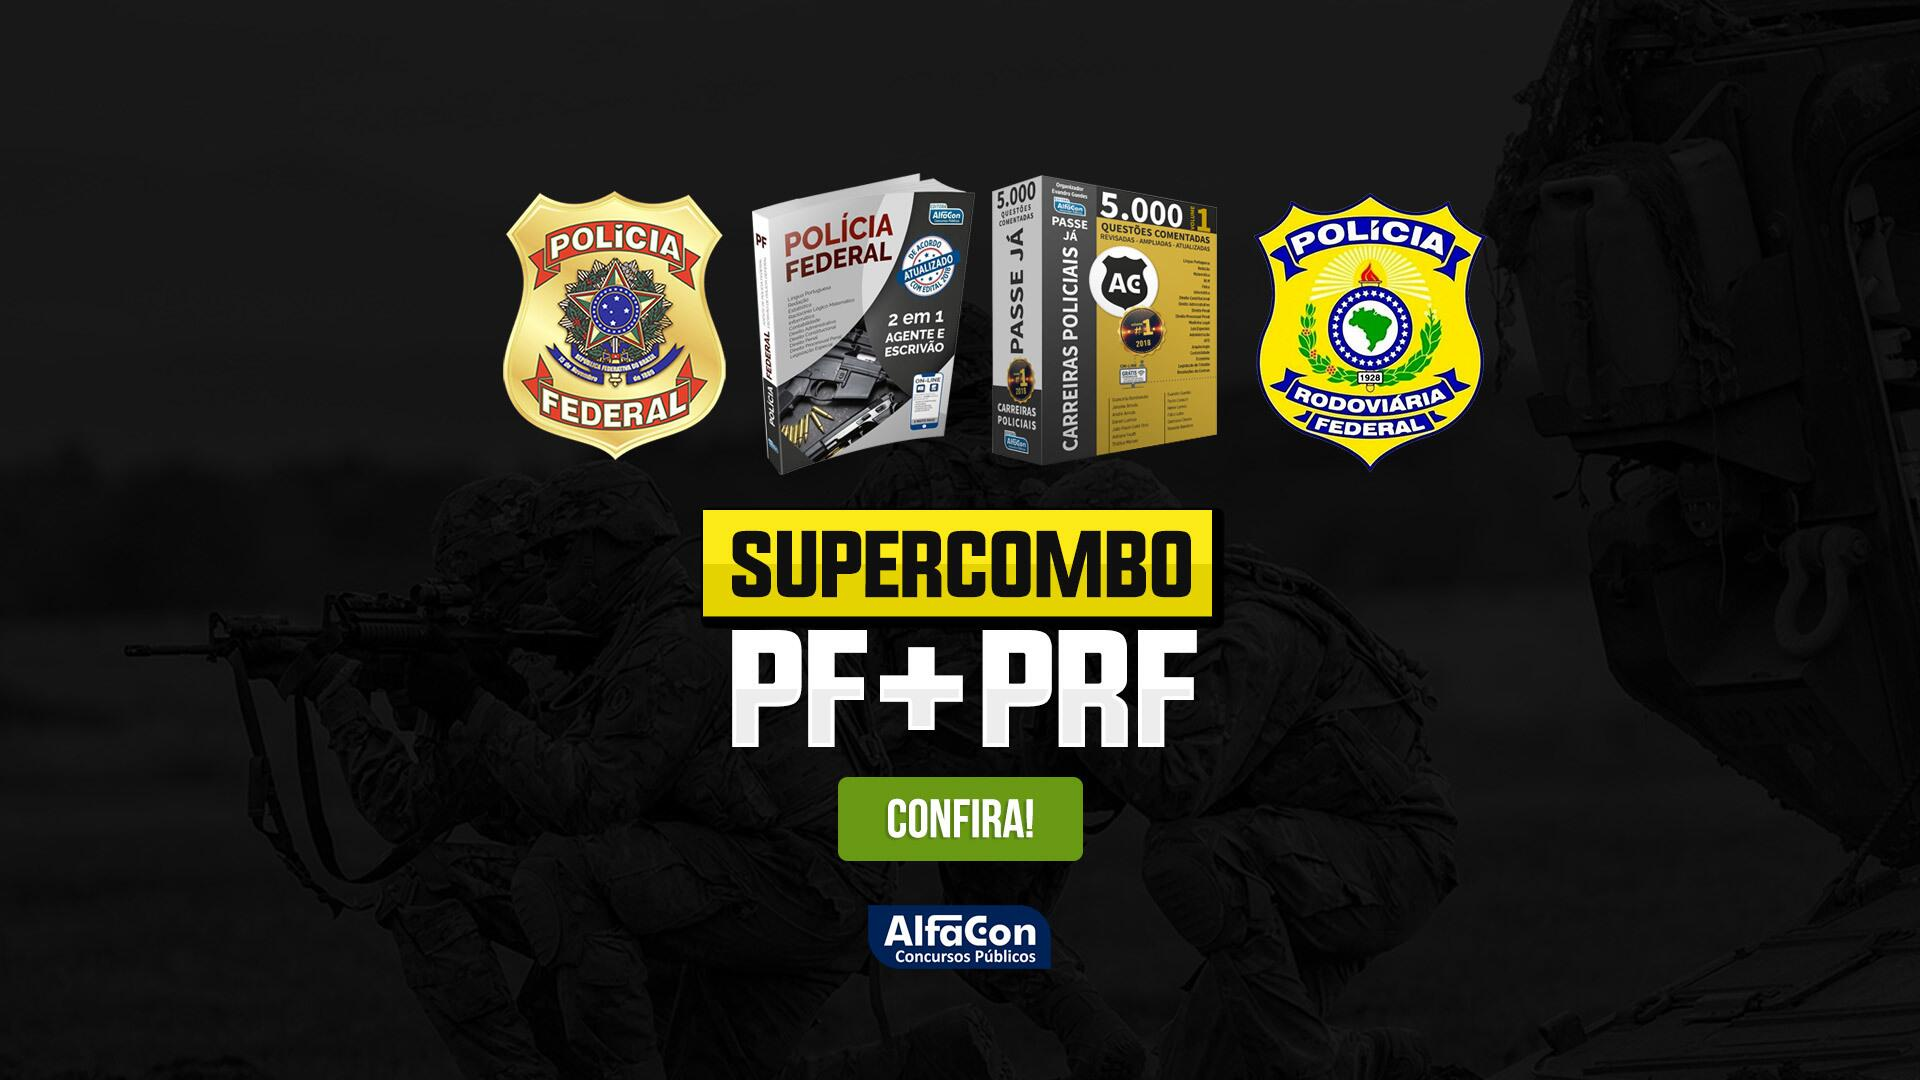 Supercombo - PF e PRF